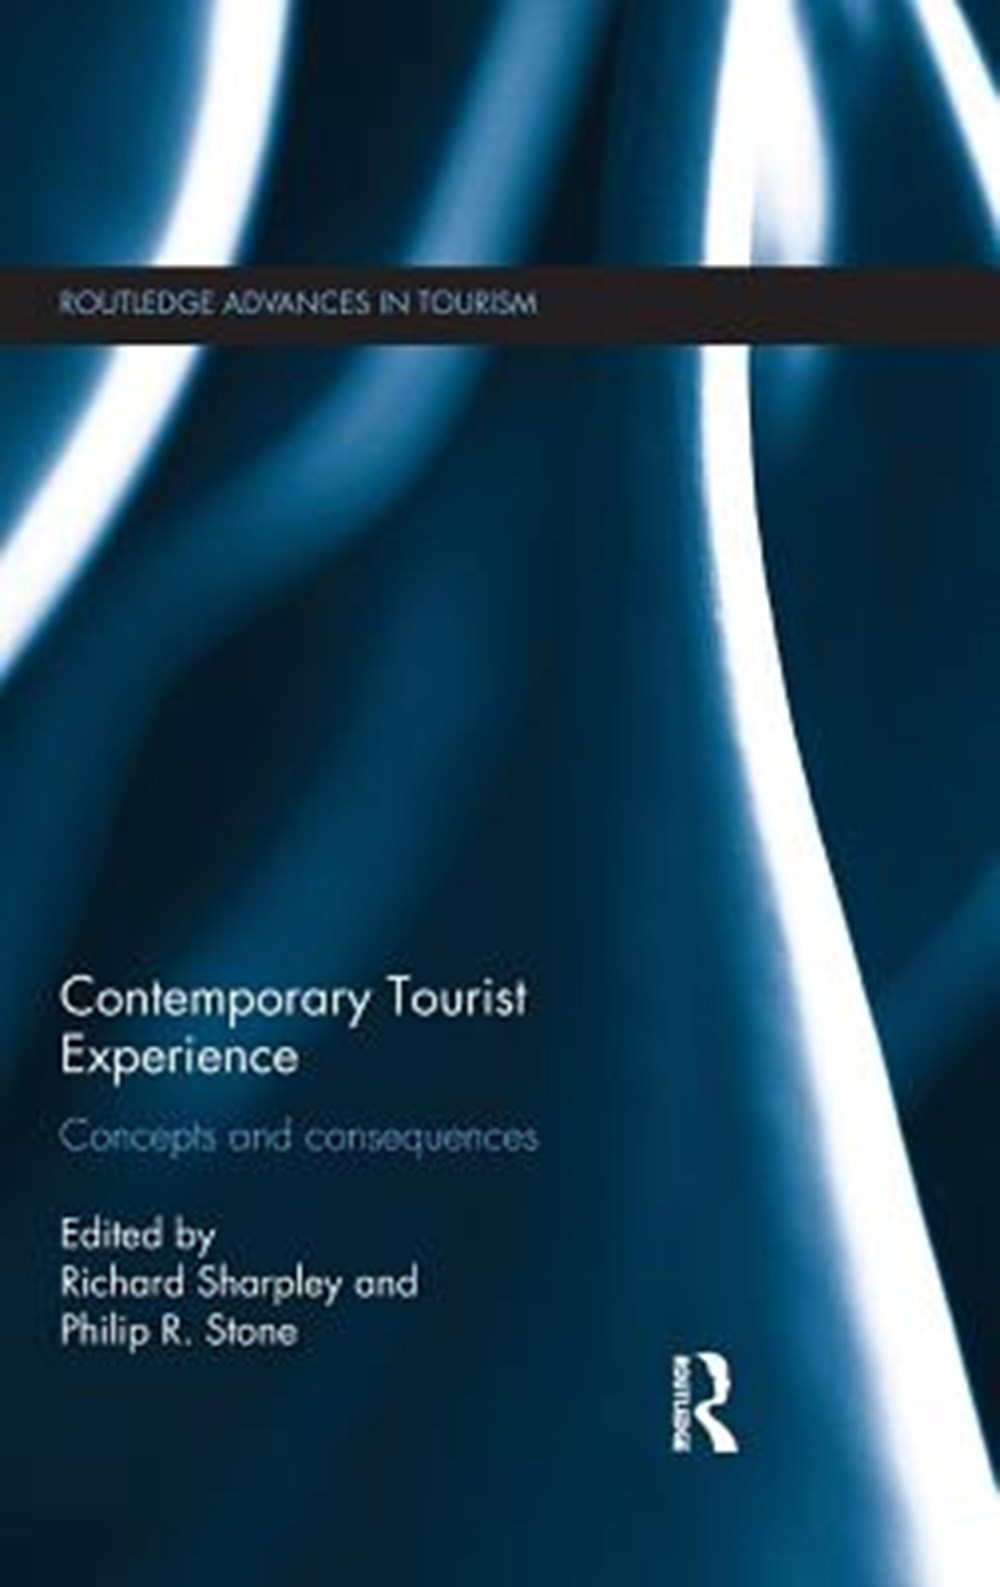 Contemporary Tourist Experience Concepts and Consequences